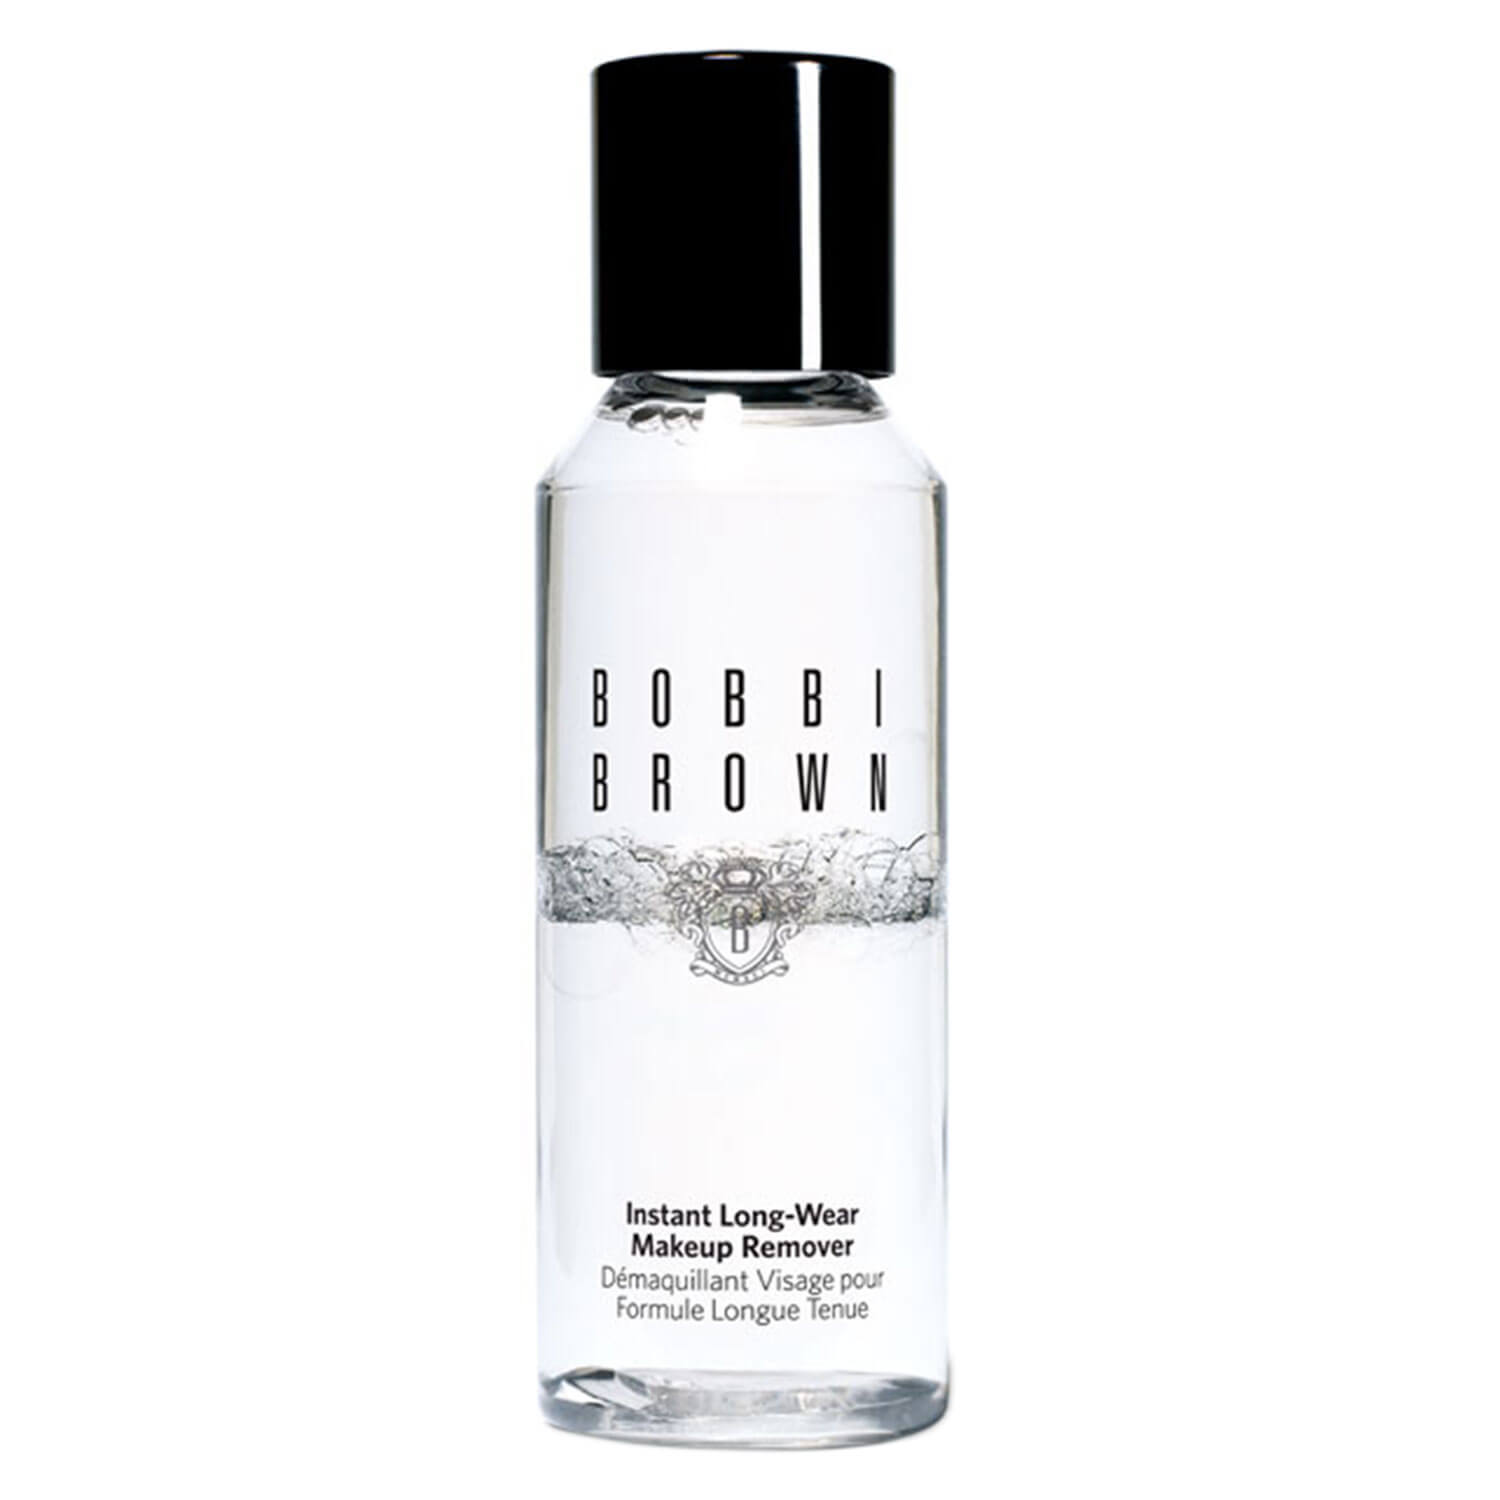 BB Skincare - Instant Long-Wear Makeup Remover